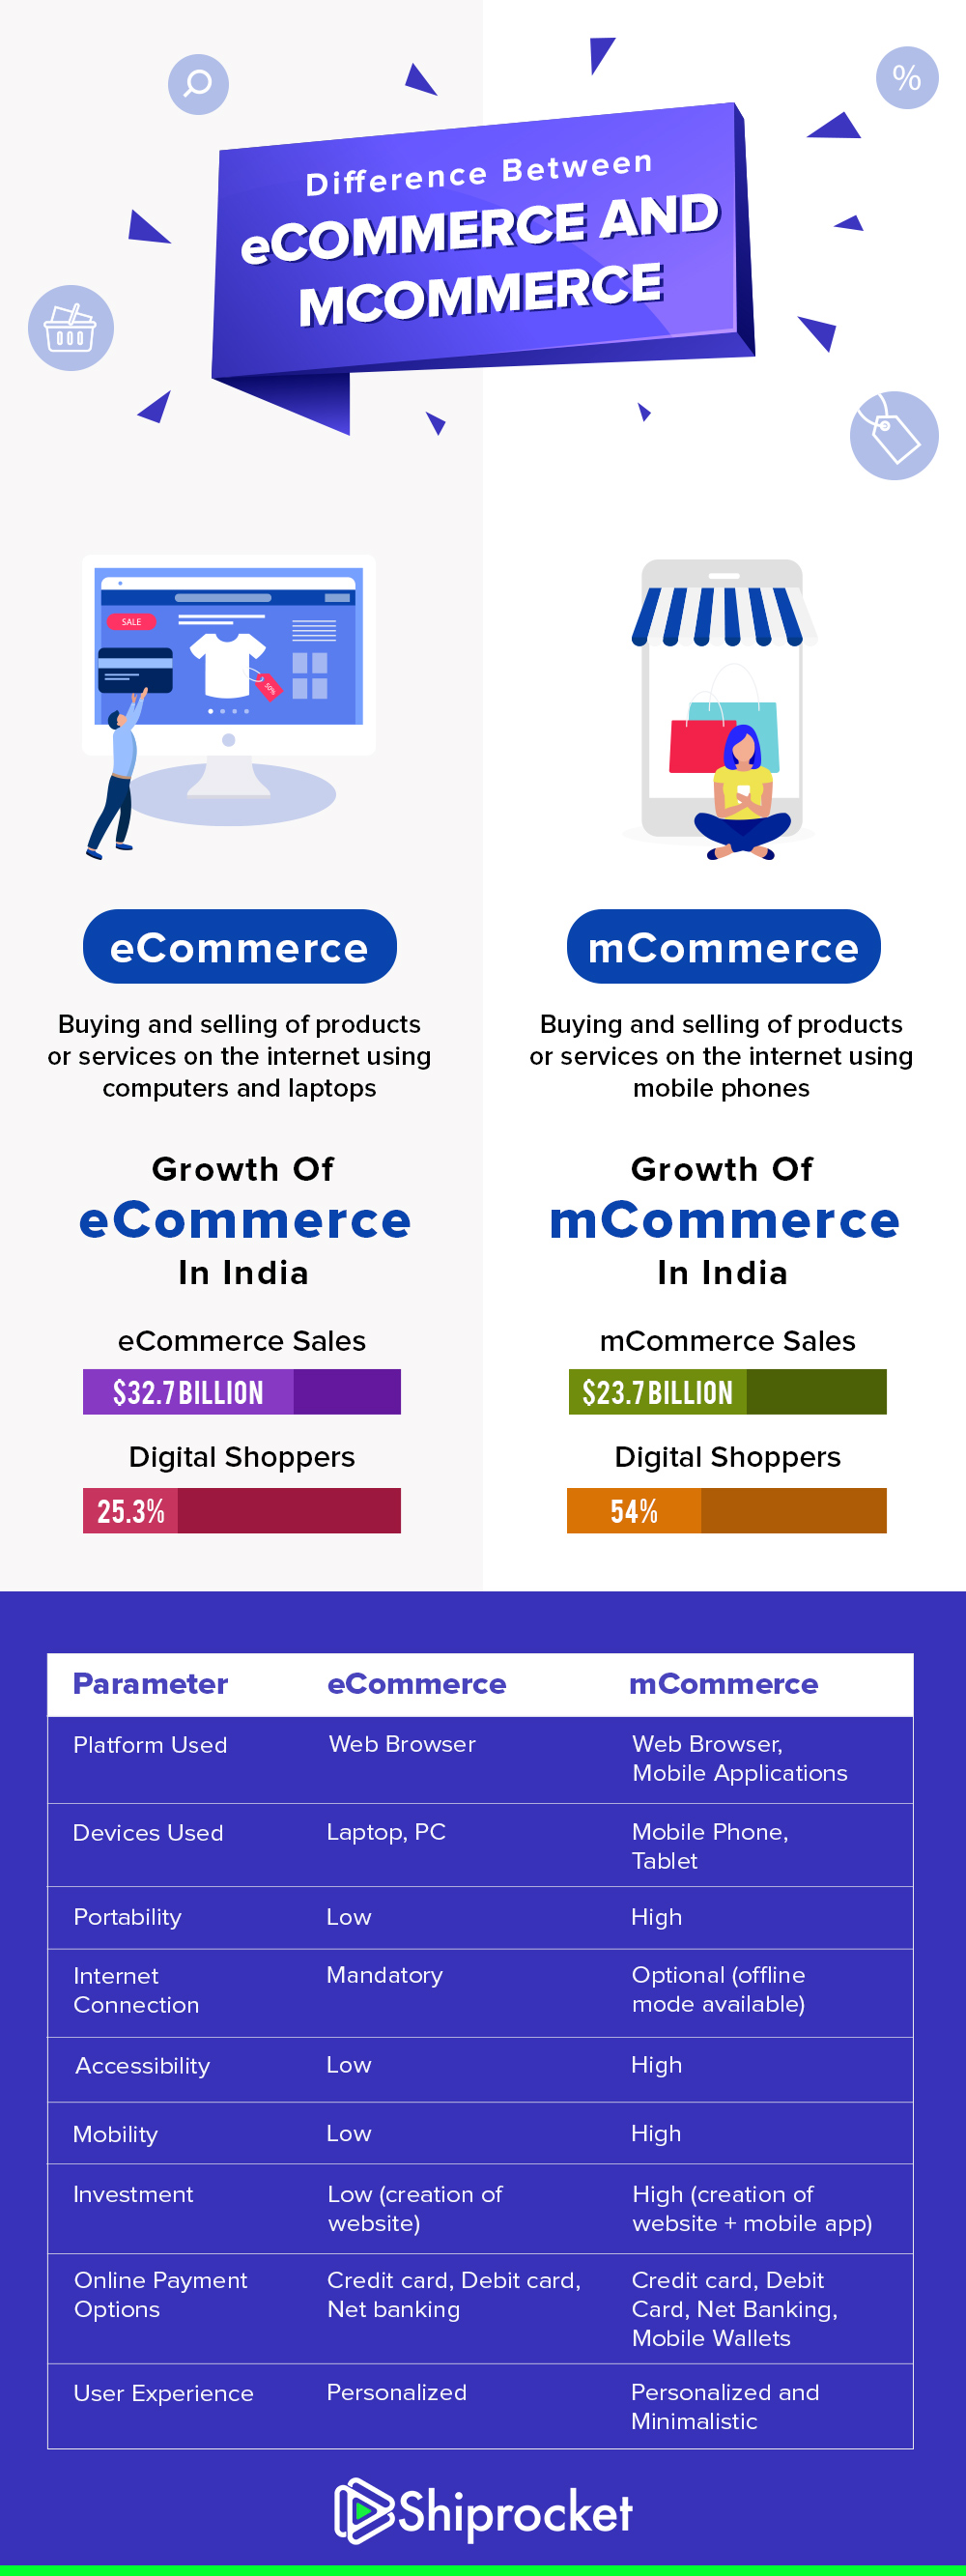 Major differences between eCommerce and mCommerce